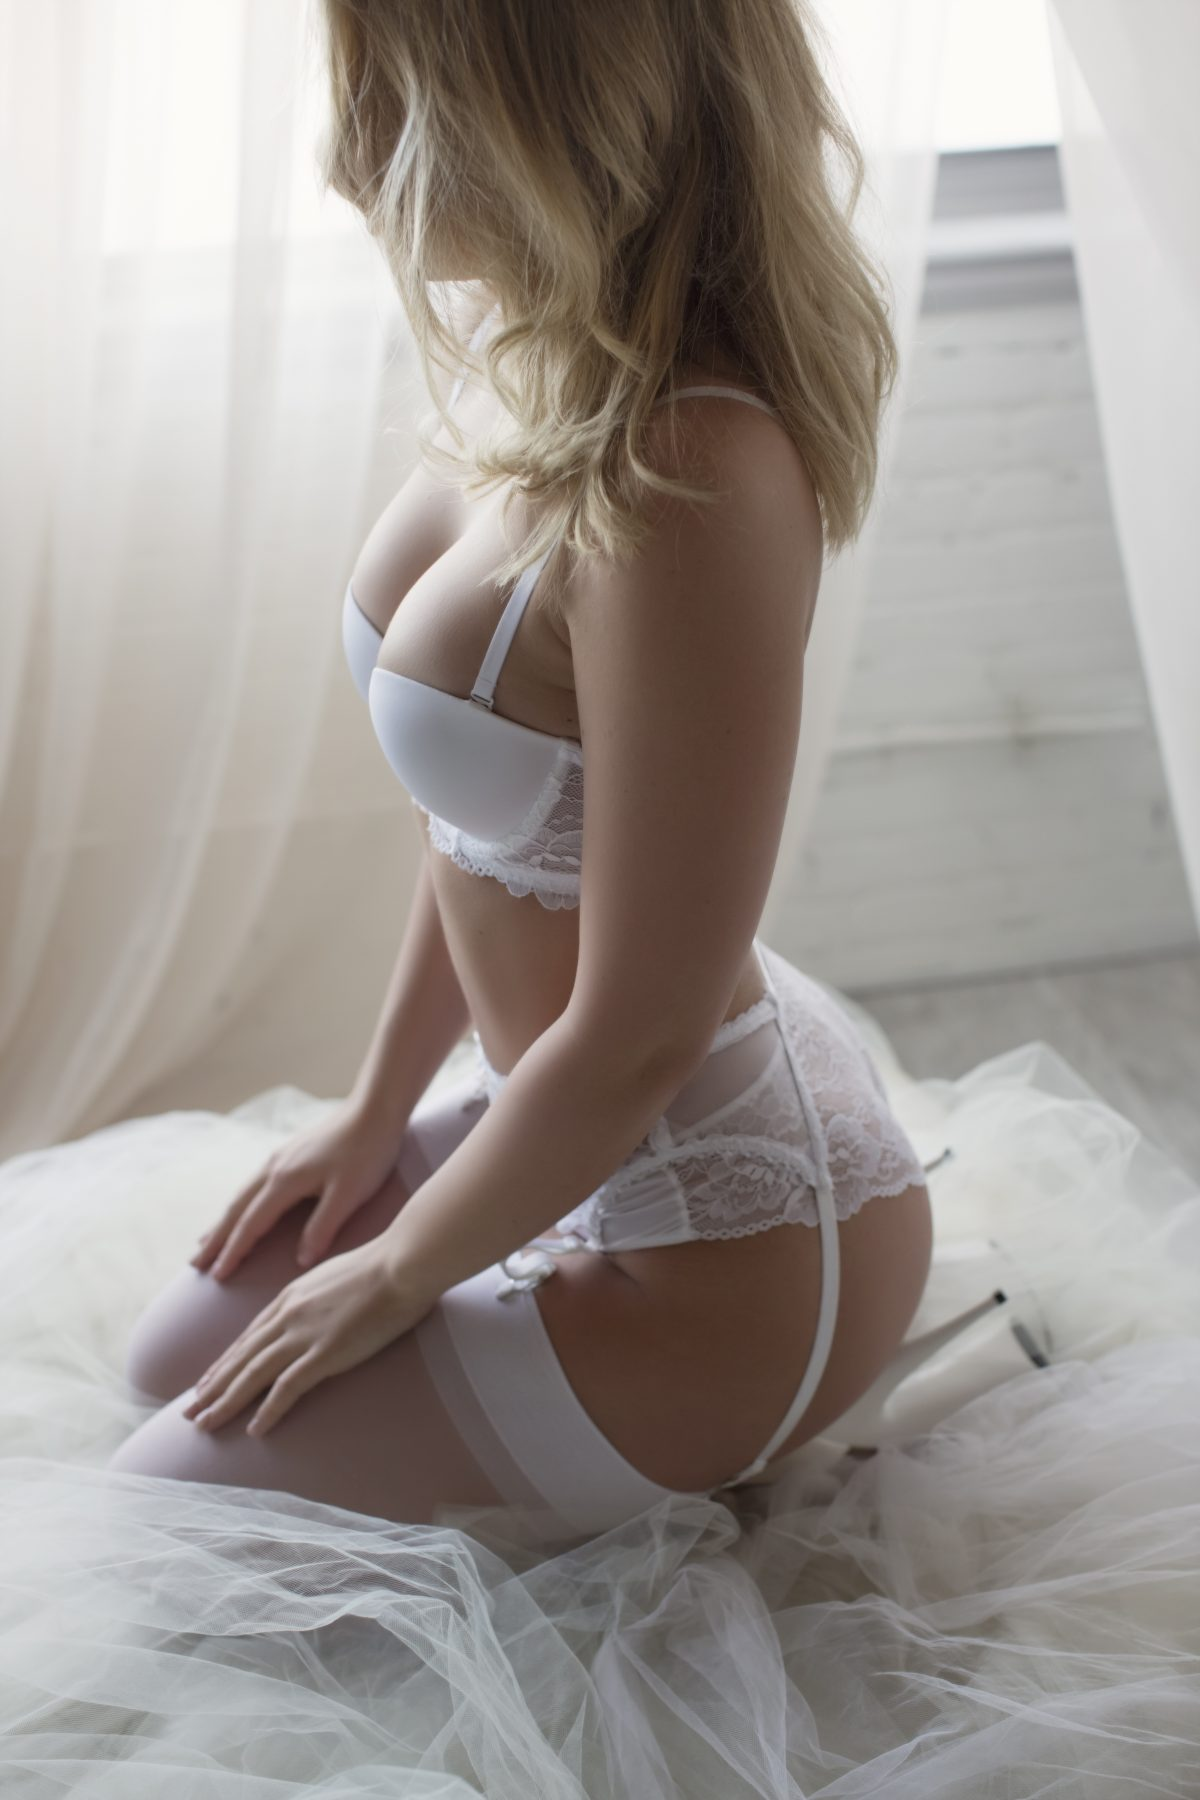 Toronto escorts companion upscale Holly Interests Disability-friendly Non-smoking Age Young Figure Slender Petite Breasts Natural Hair Blonde Ethnicity European Tattoos None Arrival New